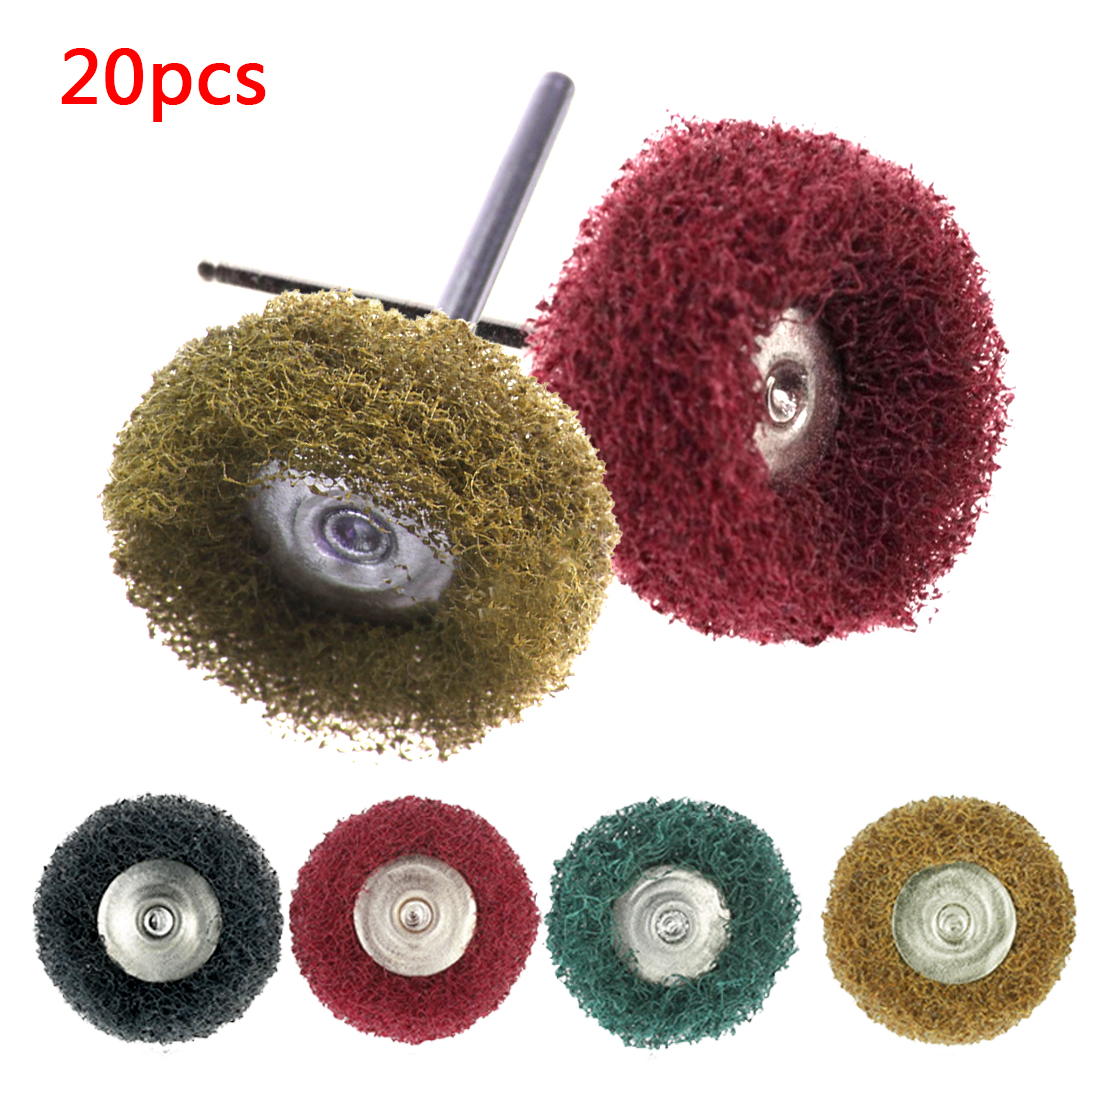 Hot 20pcs Buffing Pad Brush Polishing Wheel Jewelry Micro-Electronic Dremel Accessories For Rotary Tools Nylon Polishing Pads